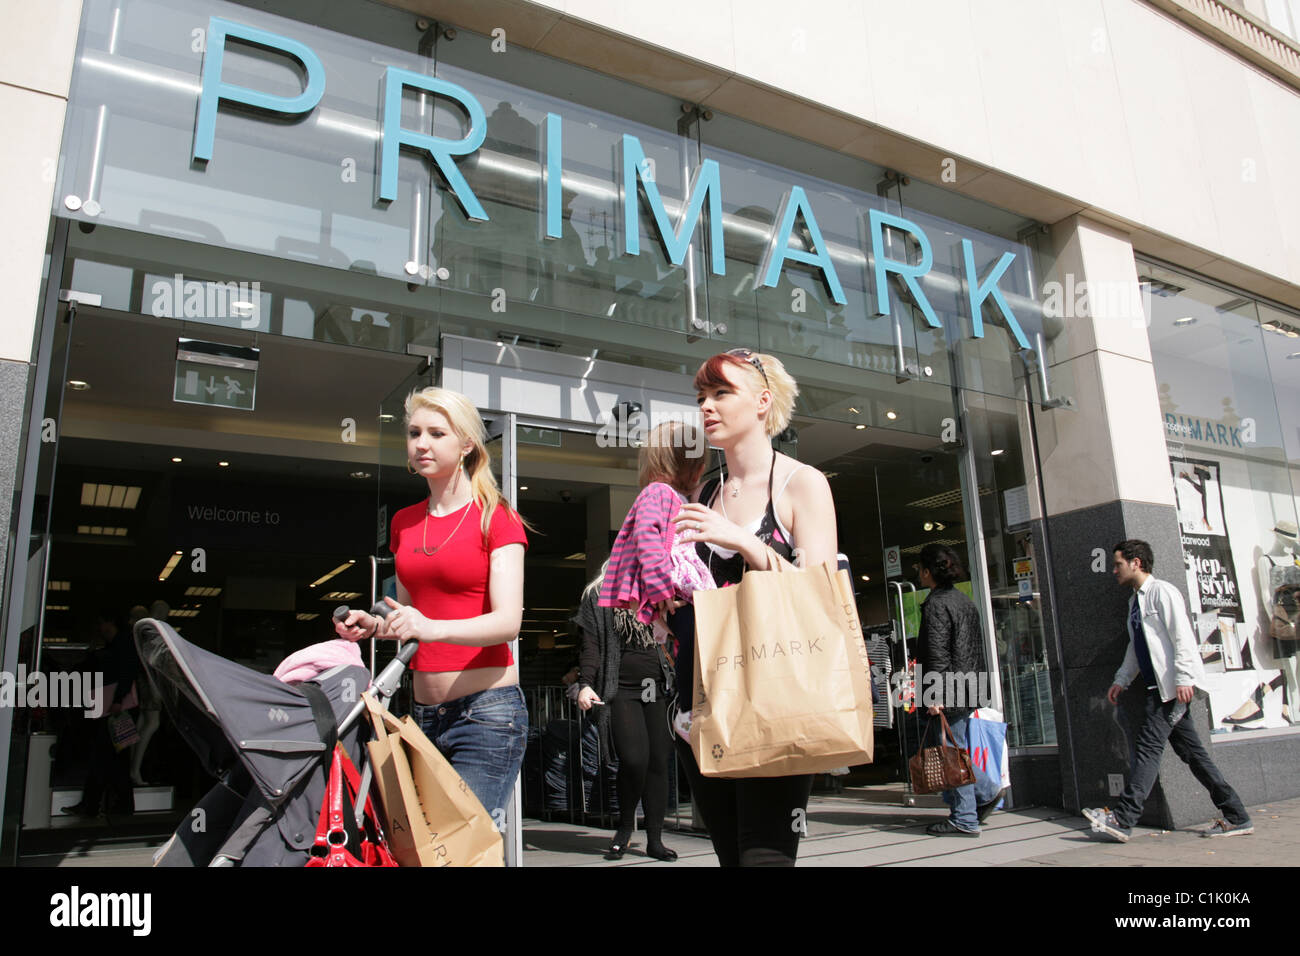 Primark shop front and shoppers. - Stock Image